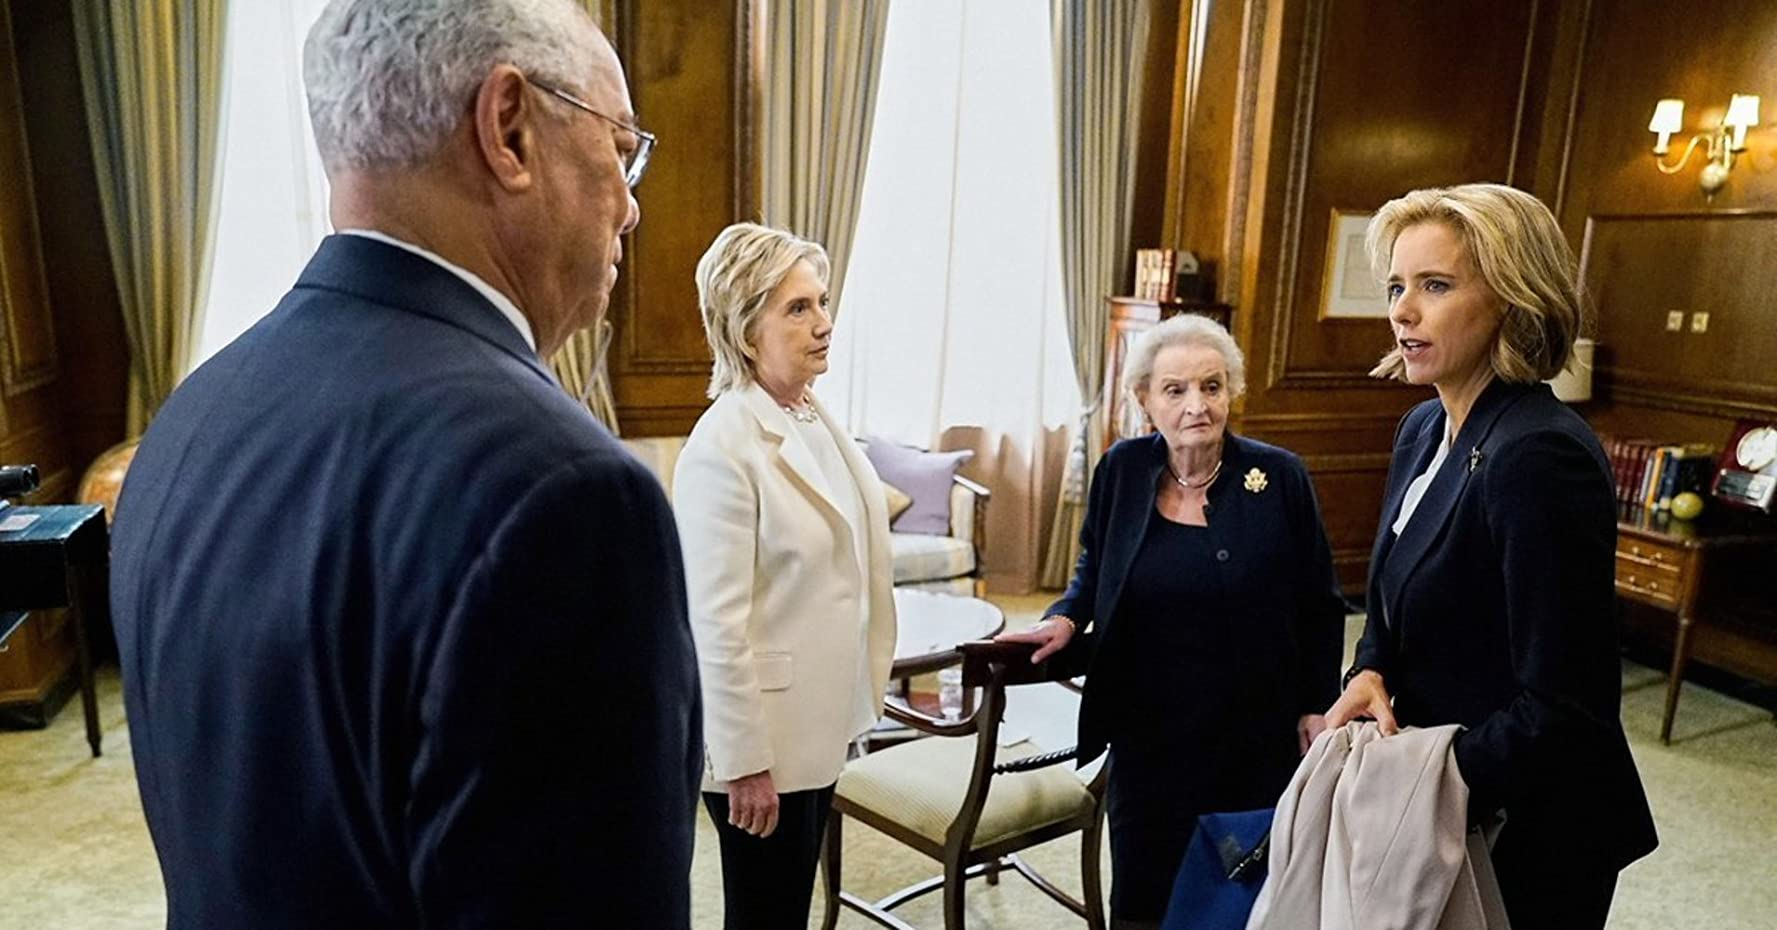 Téa Leoni, Hillary Clinton, Colin Powell, and Madeleine Albright in Madam Secretary (2014)